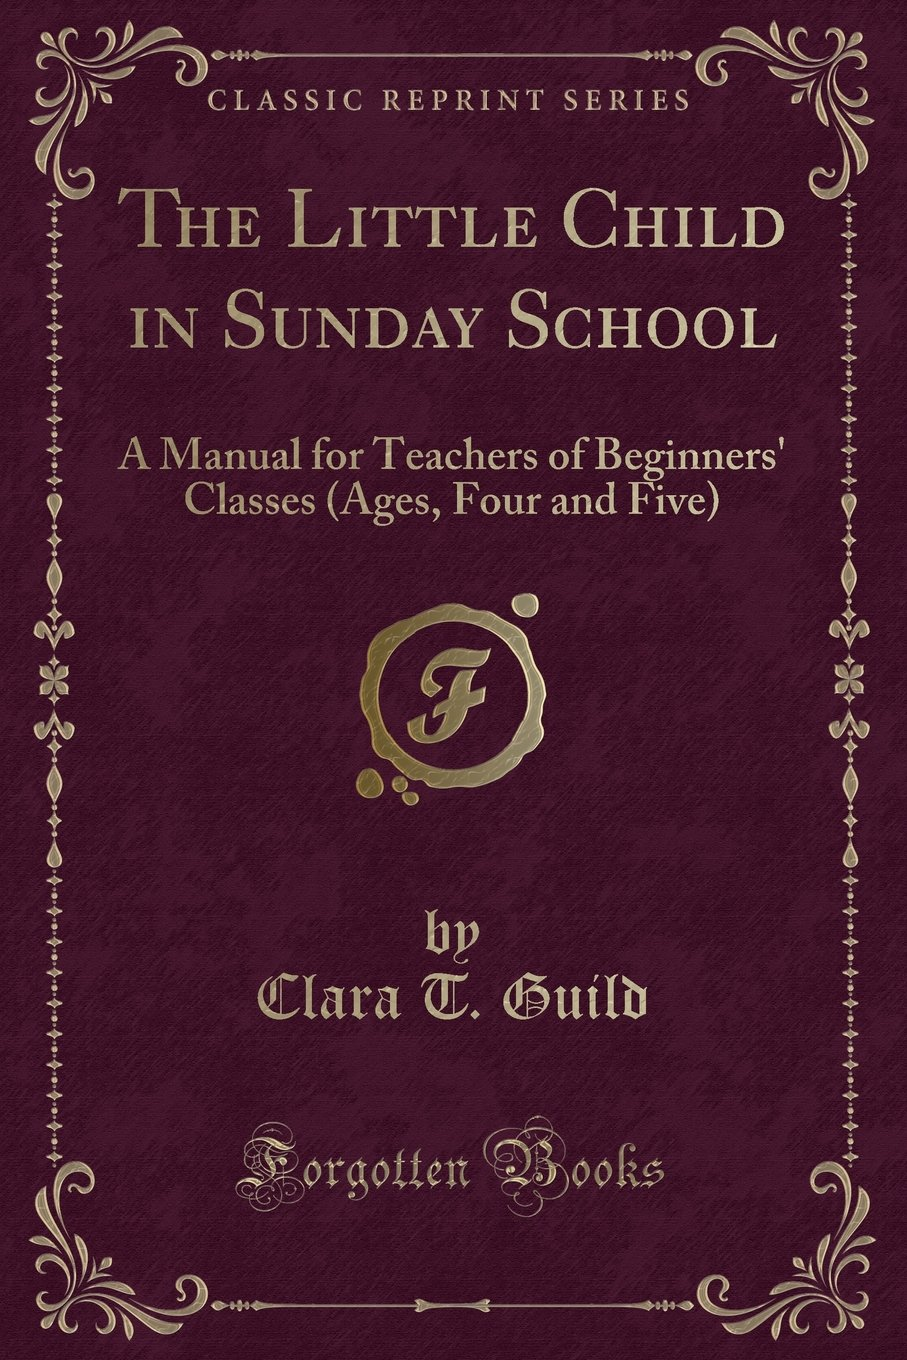 The Little Child in Sunday School: A Manual for Teachers of Beginners'  Classes (Ages, Four and Five) (Classic Reprint): Clara T. Guild:  9781331543251: ...